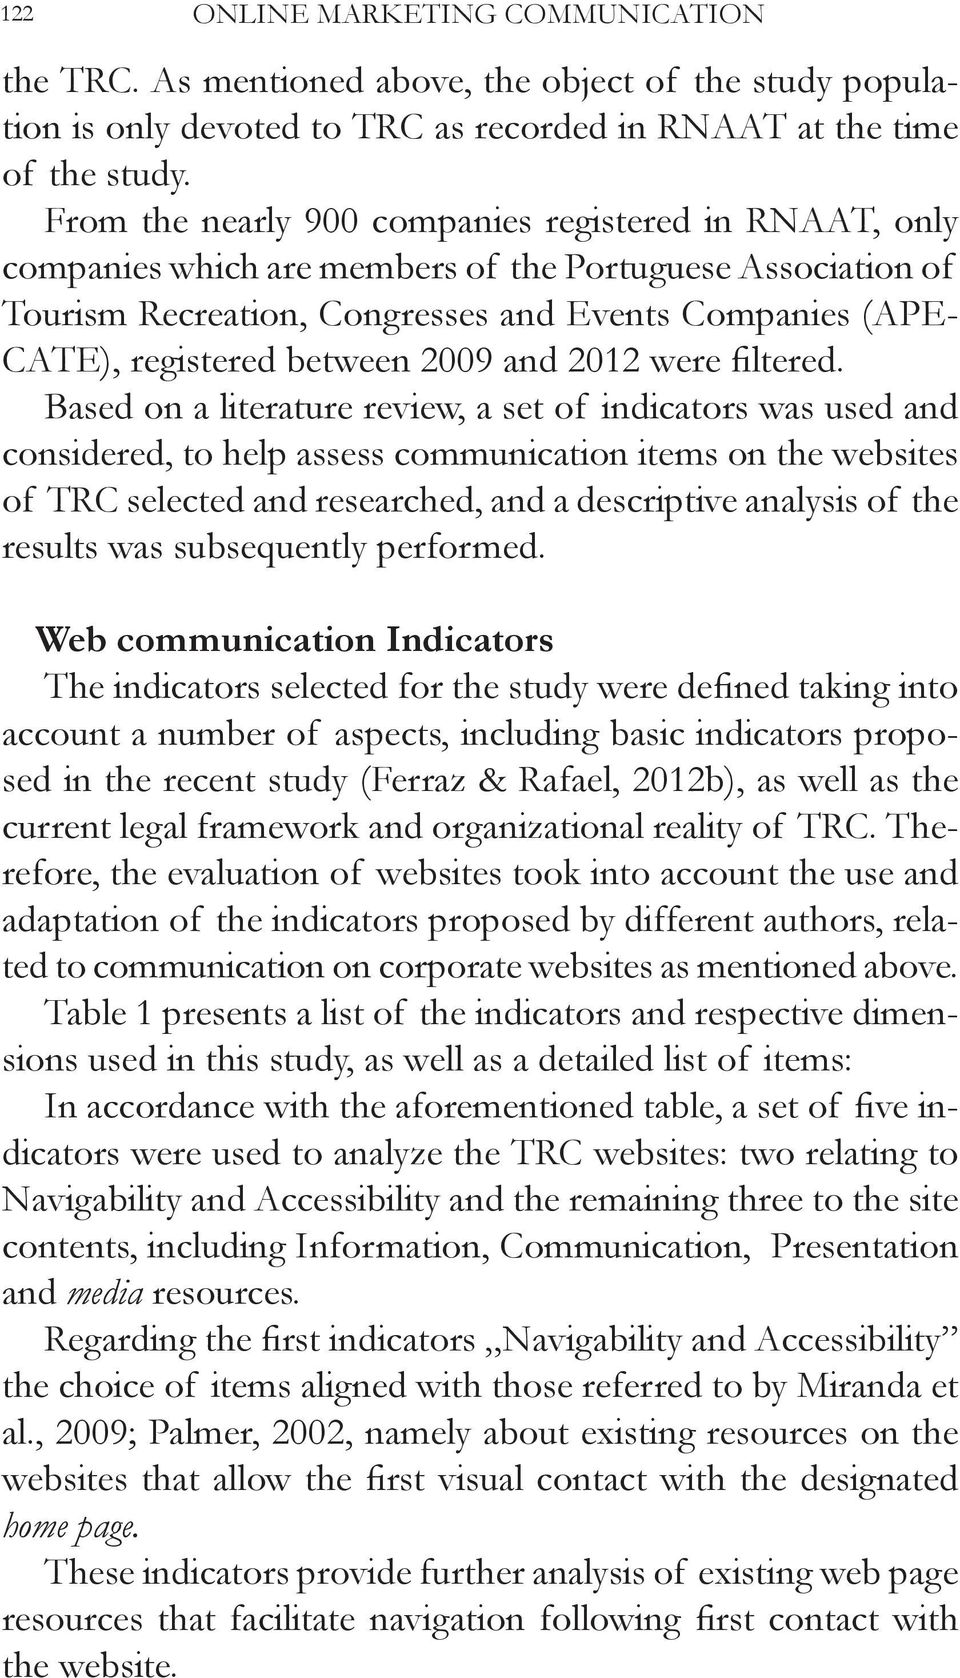 review, a set of indicators was used and considered, to help assess communication items on the websites of TRC selected and researched, and a descriptive analysis of the results was subsequently